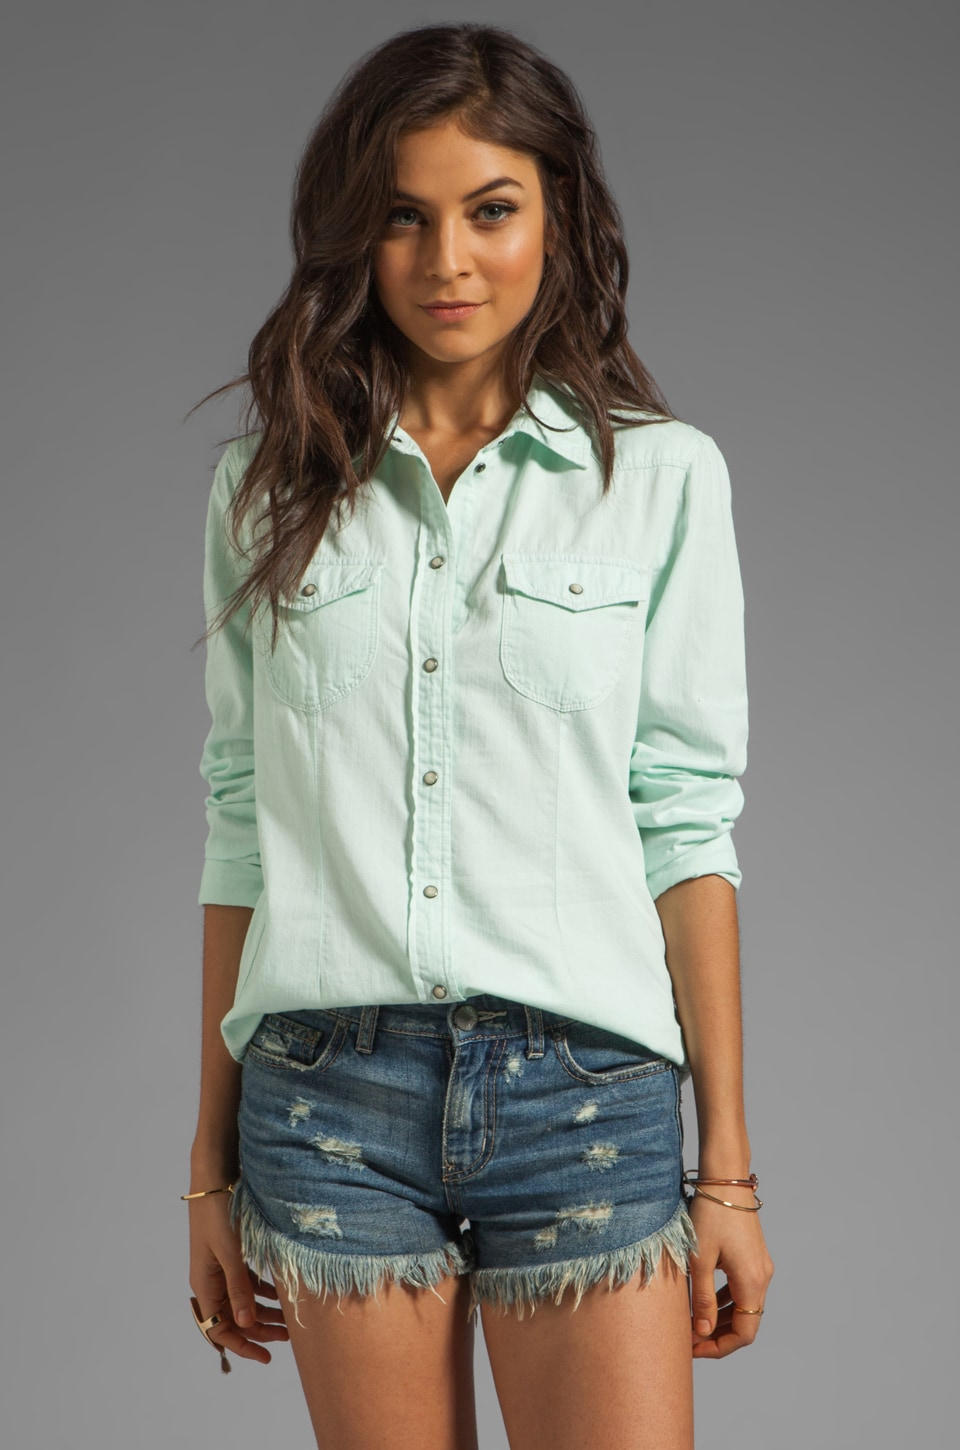 Sanctuary Southern Rock Top in Billy Mint